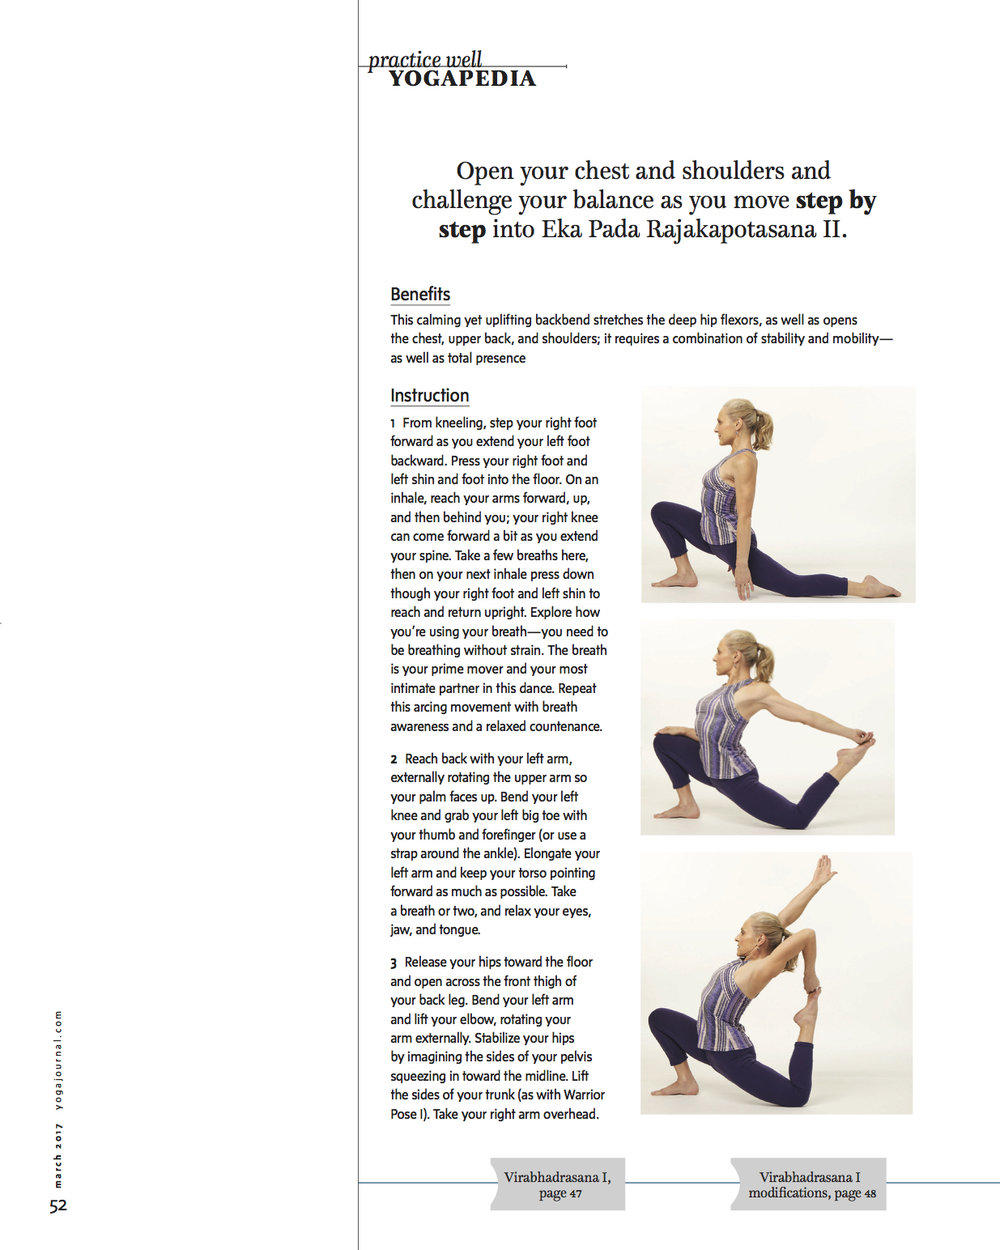 March Yogapedia page 5.jpg